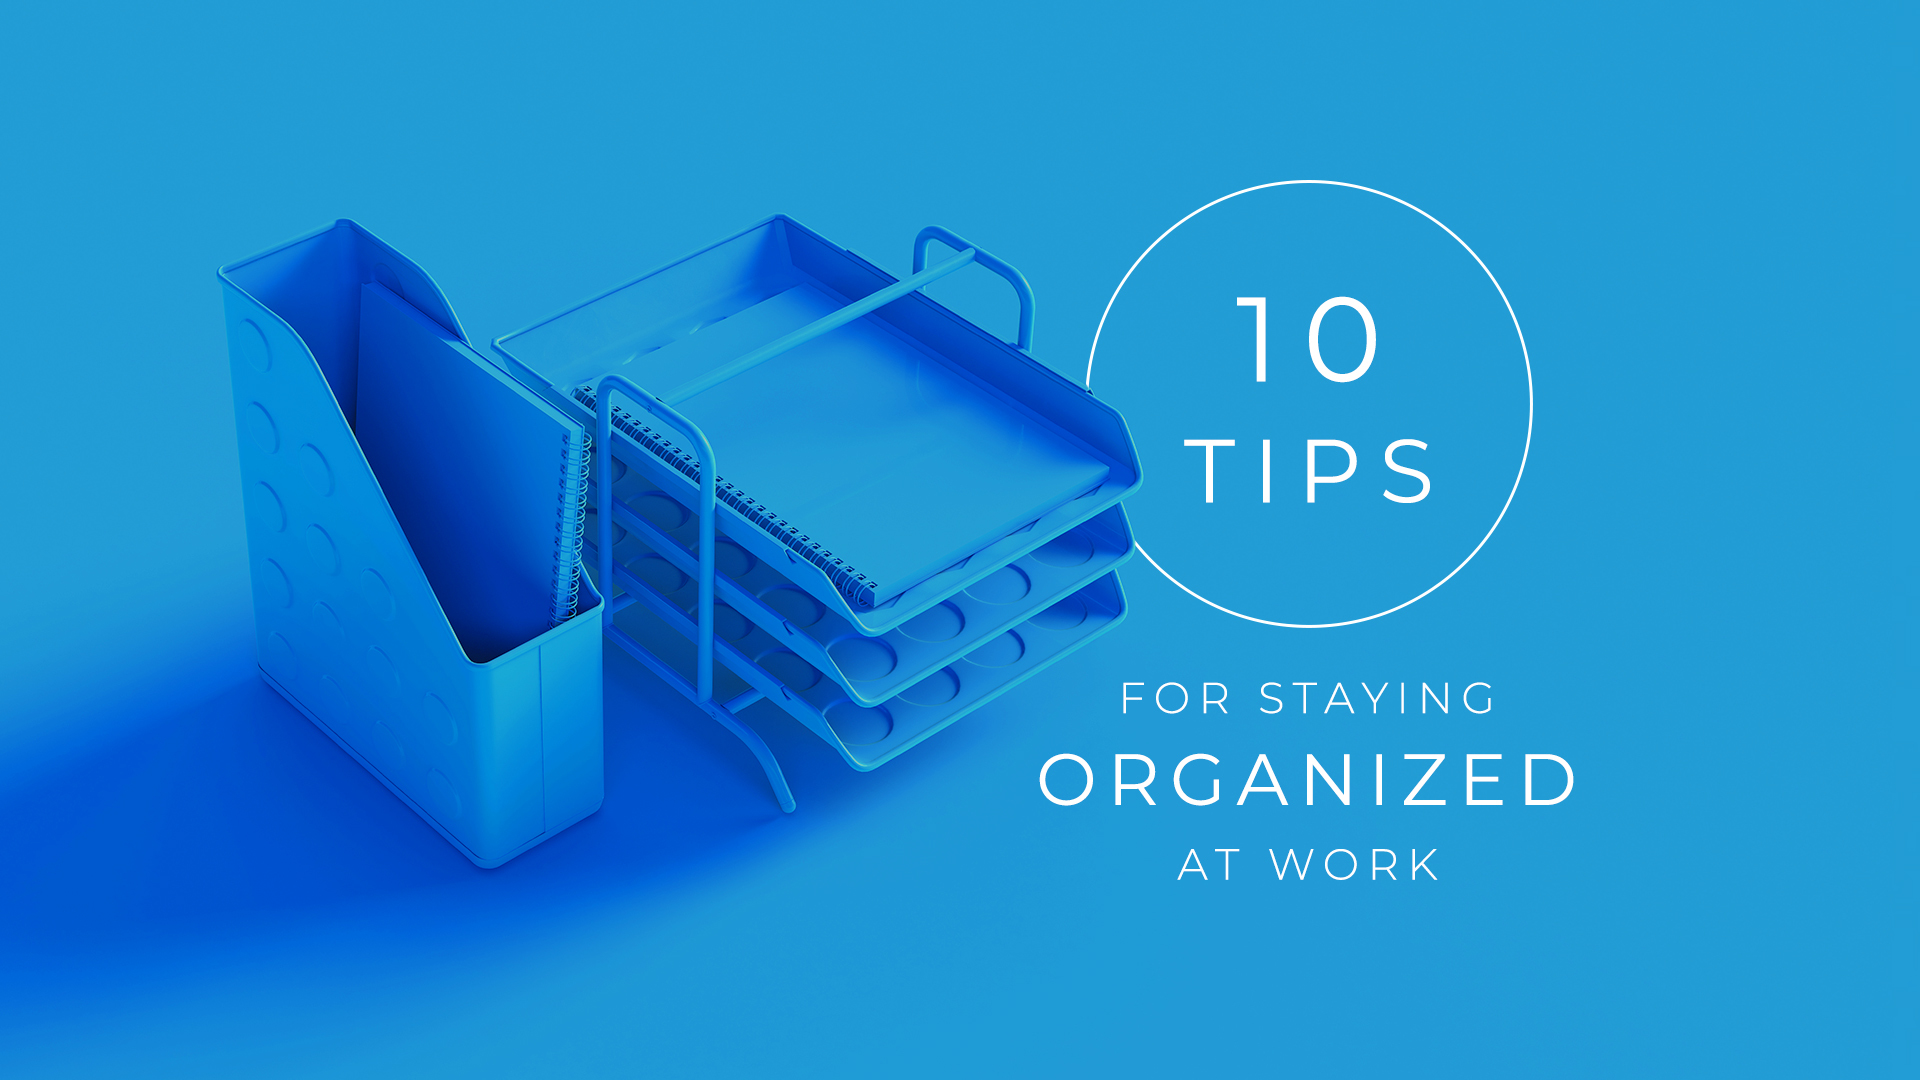 10 Tips for Staying Organized at Work